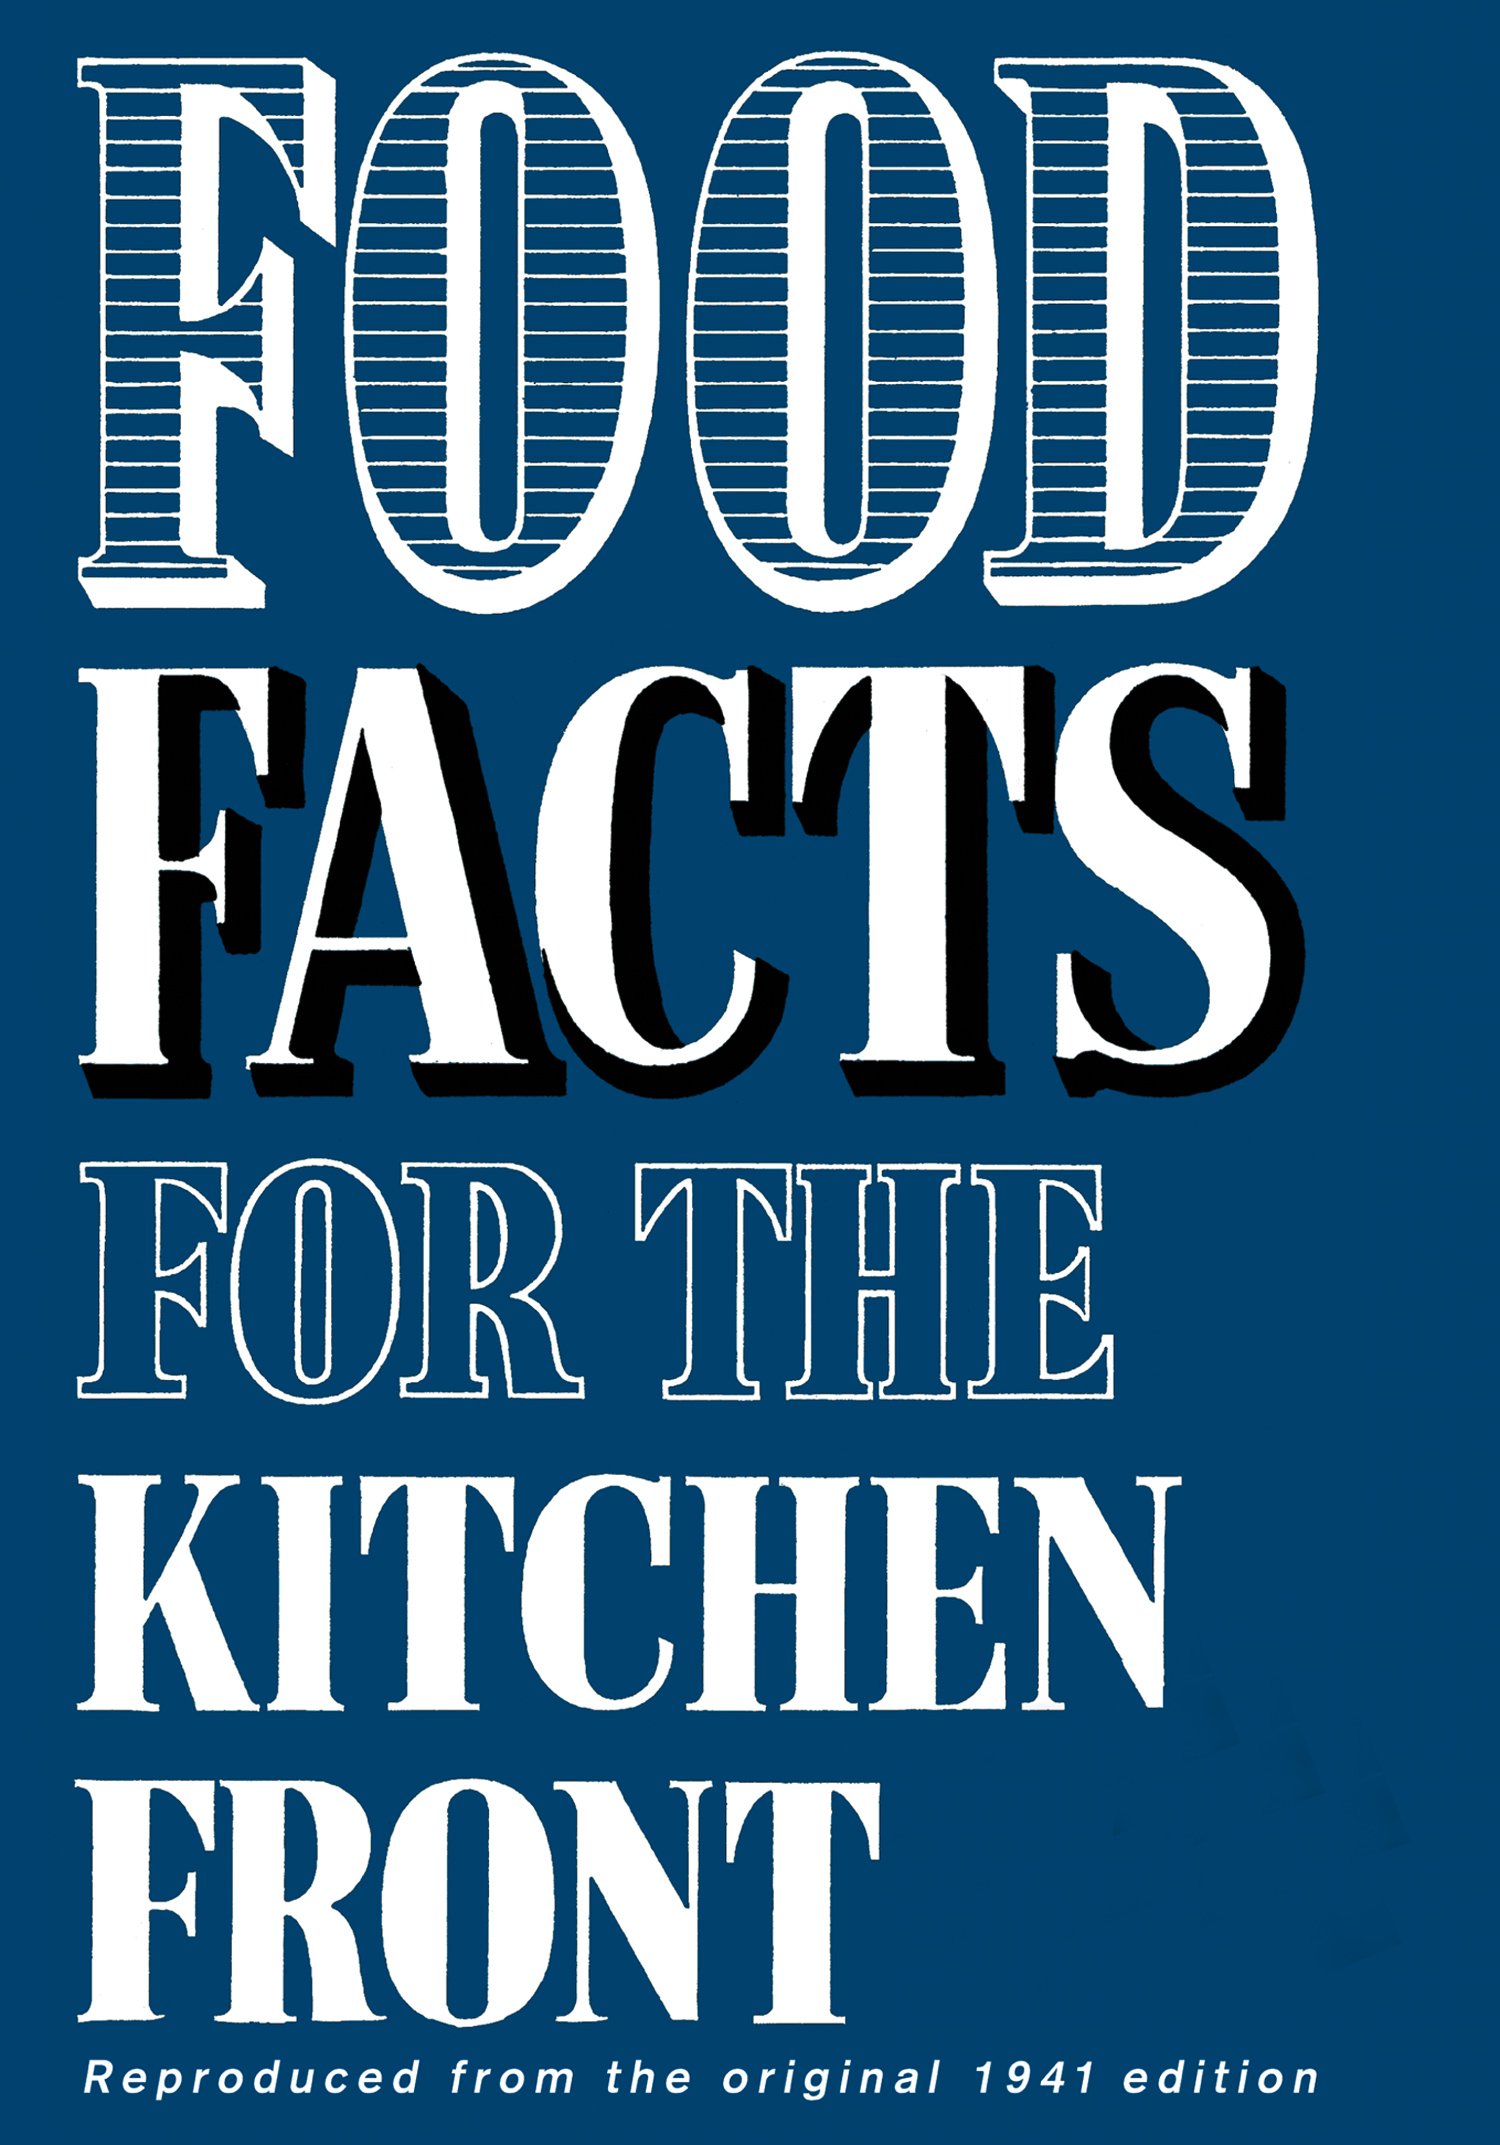 Food Facts for the Kitchen Front By: HarperPress